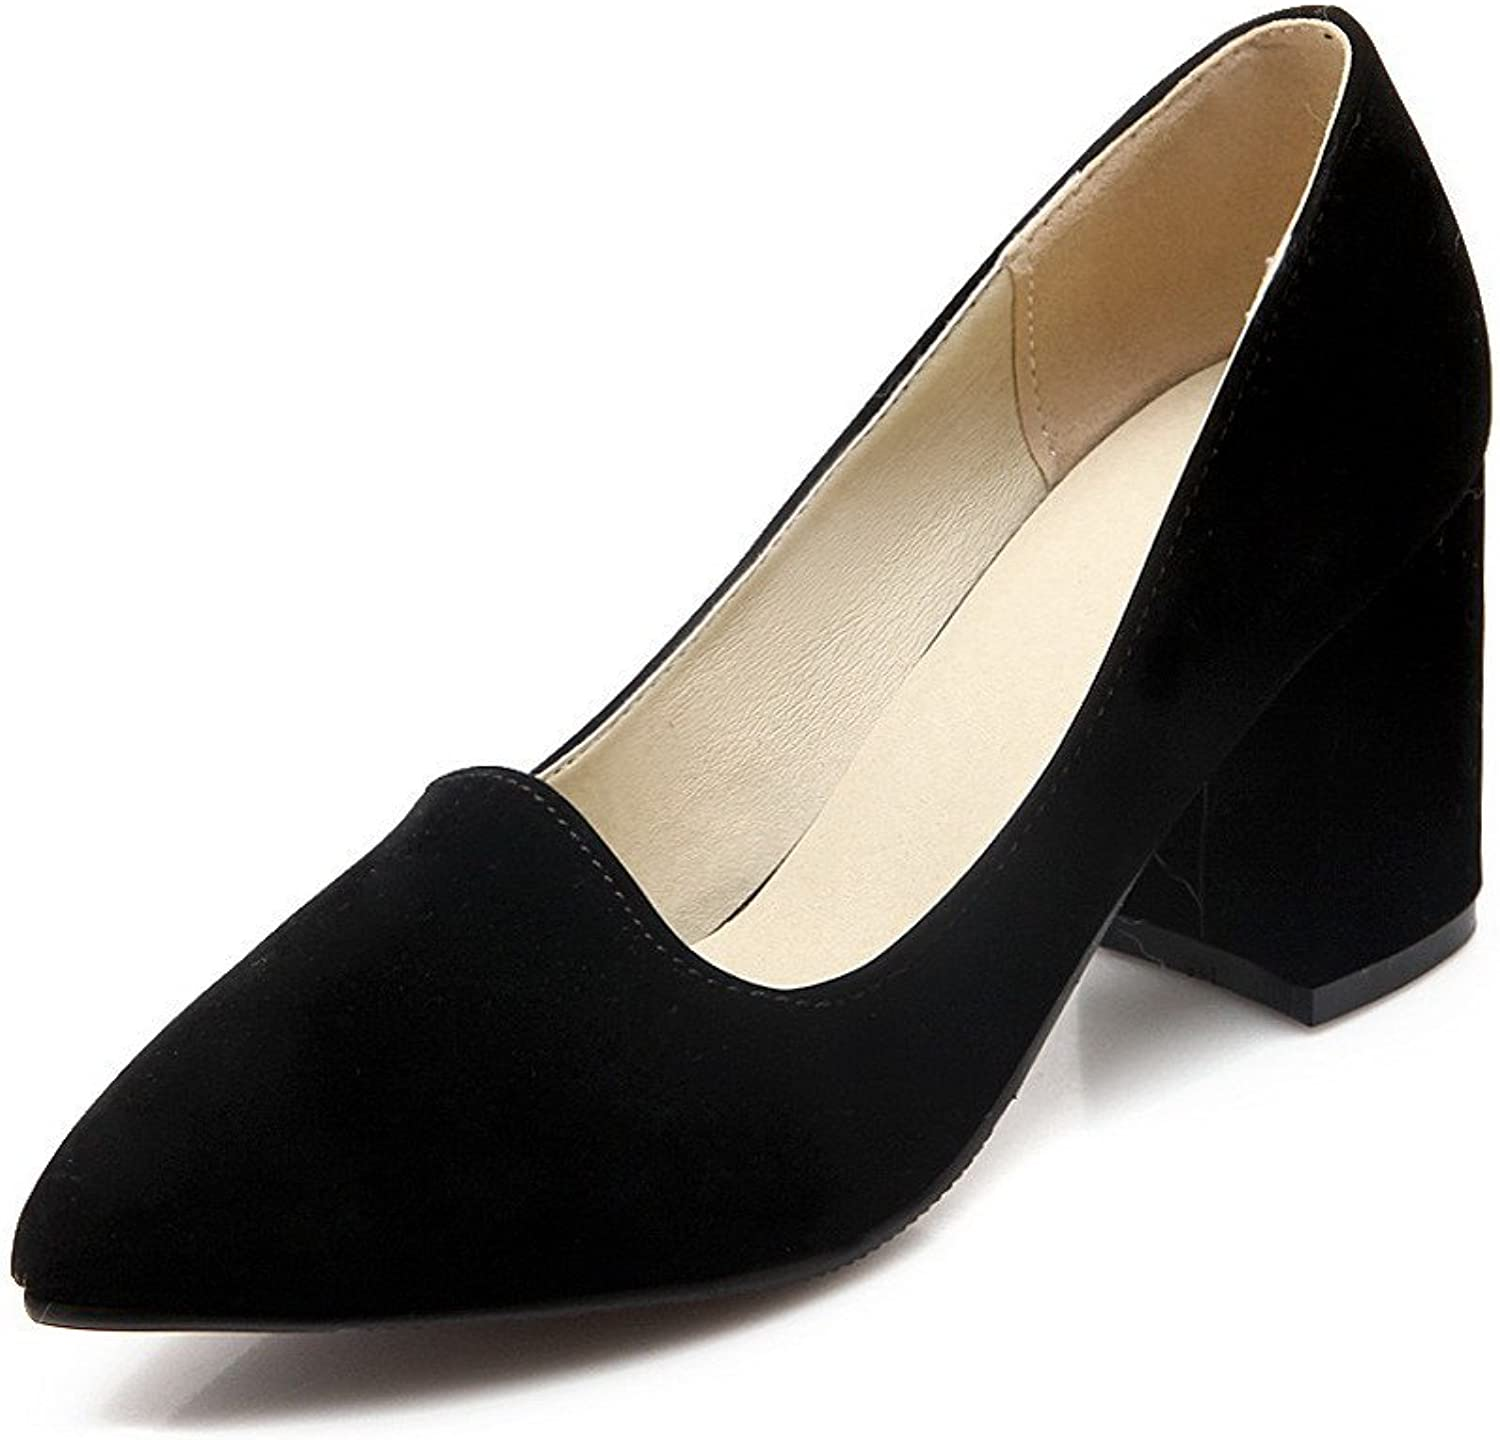 AmoonyFashion Women's Frosted Pointed Closed Toe High-Heels Pull-on Solid Pumps-shoes